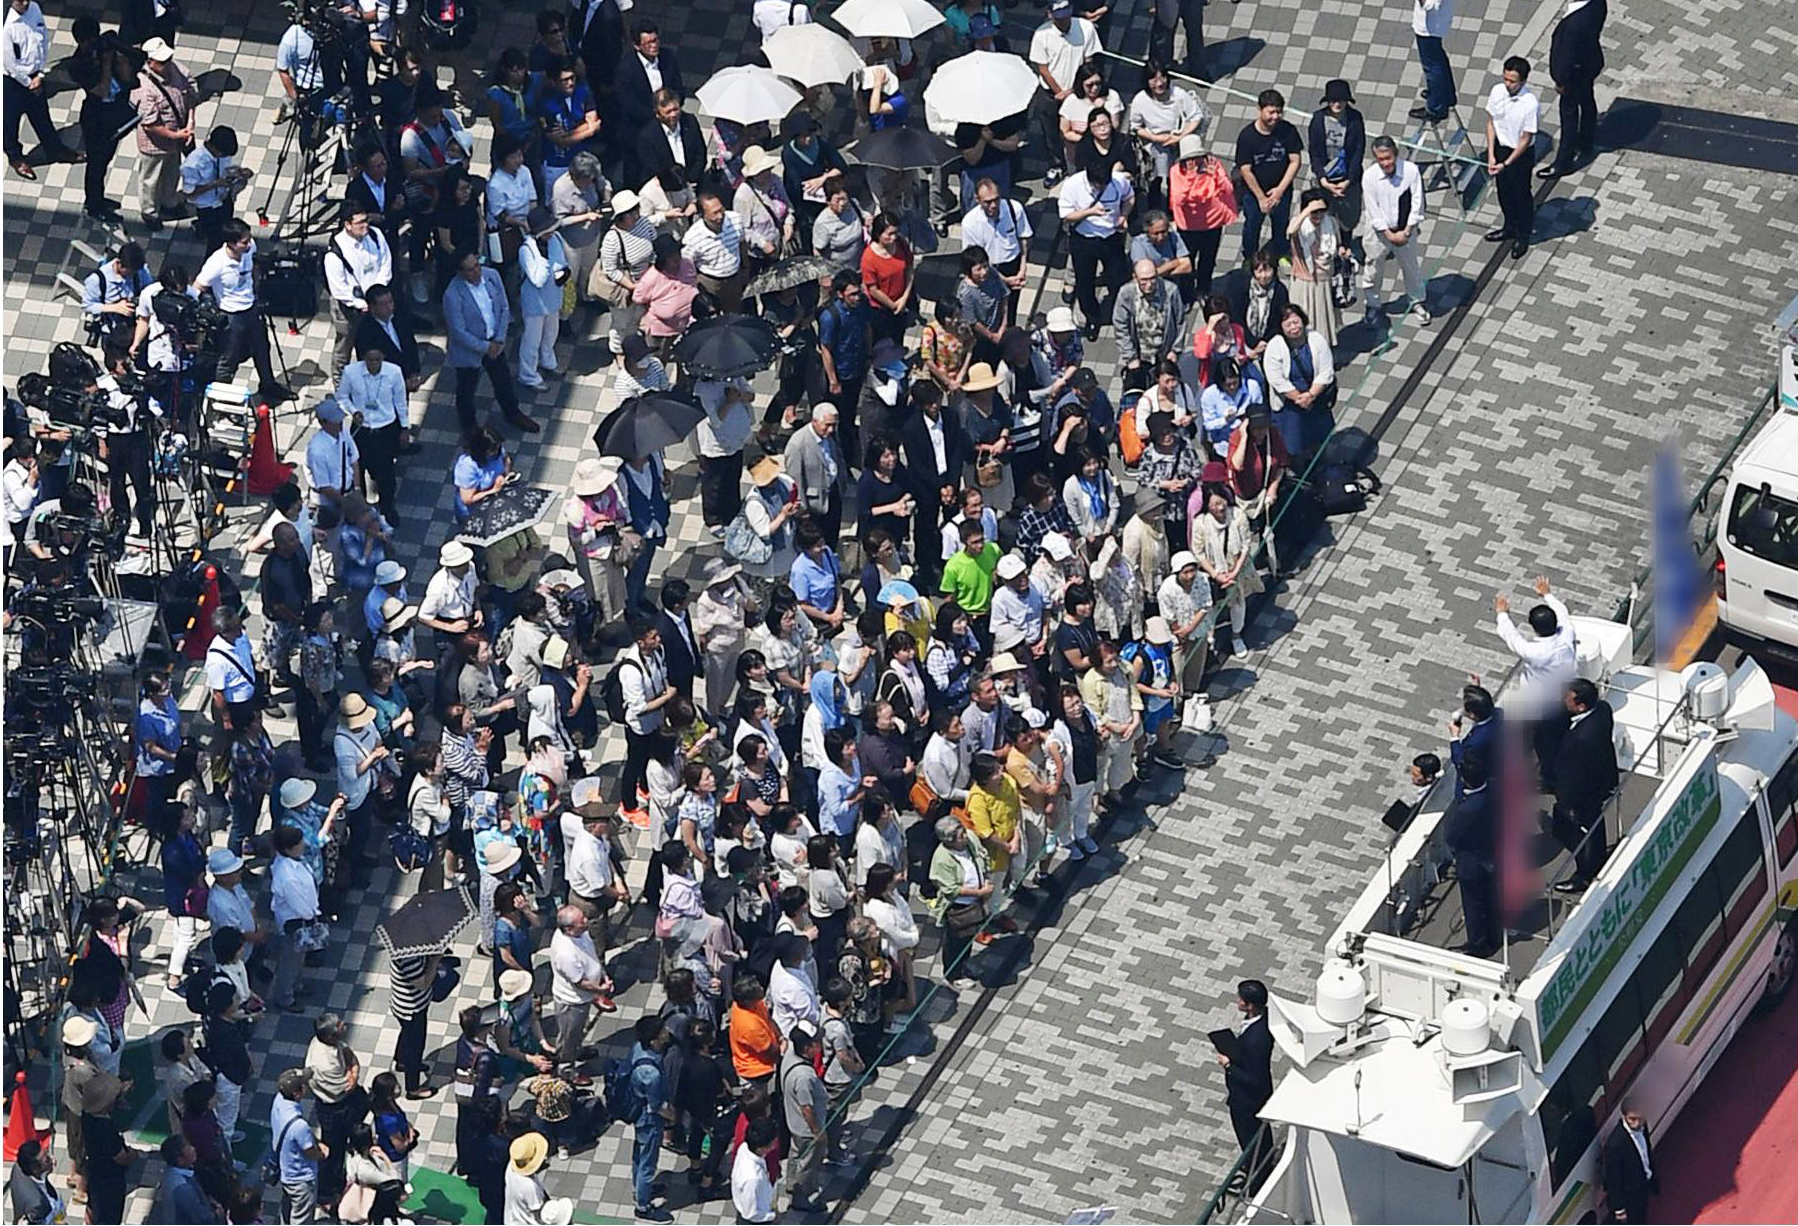 People listen to a politician speak in Shinagawa Ward on Friday morning as campaigning officially kicked off for the July 2 Tokyo Metropolitan Assembly election. | KYODO